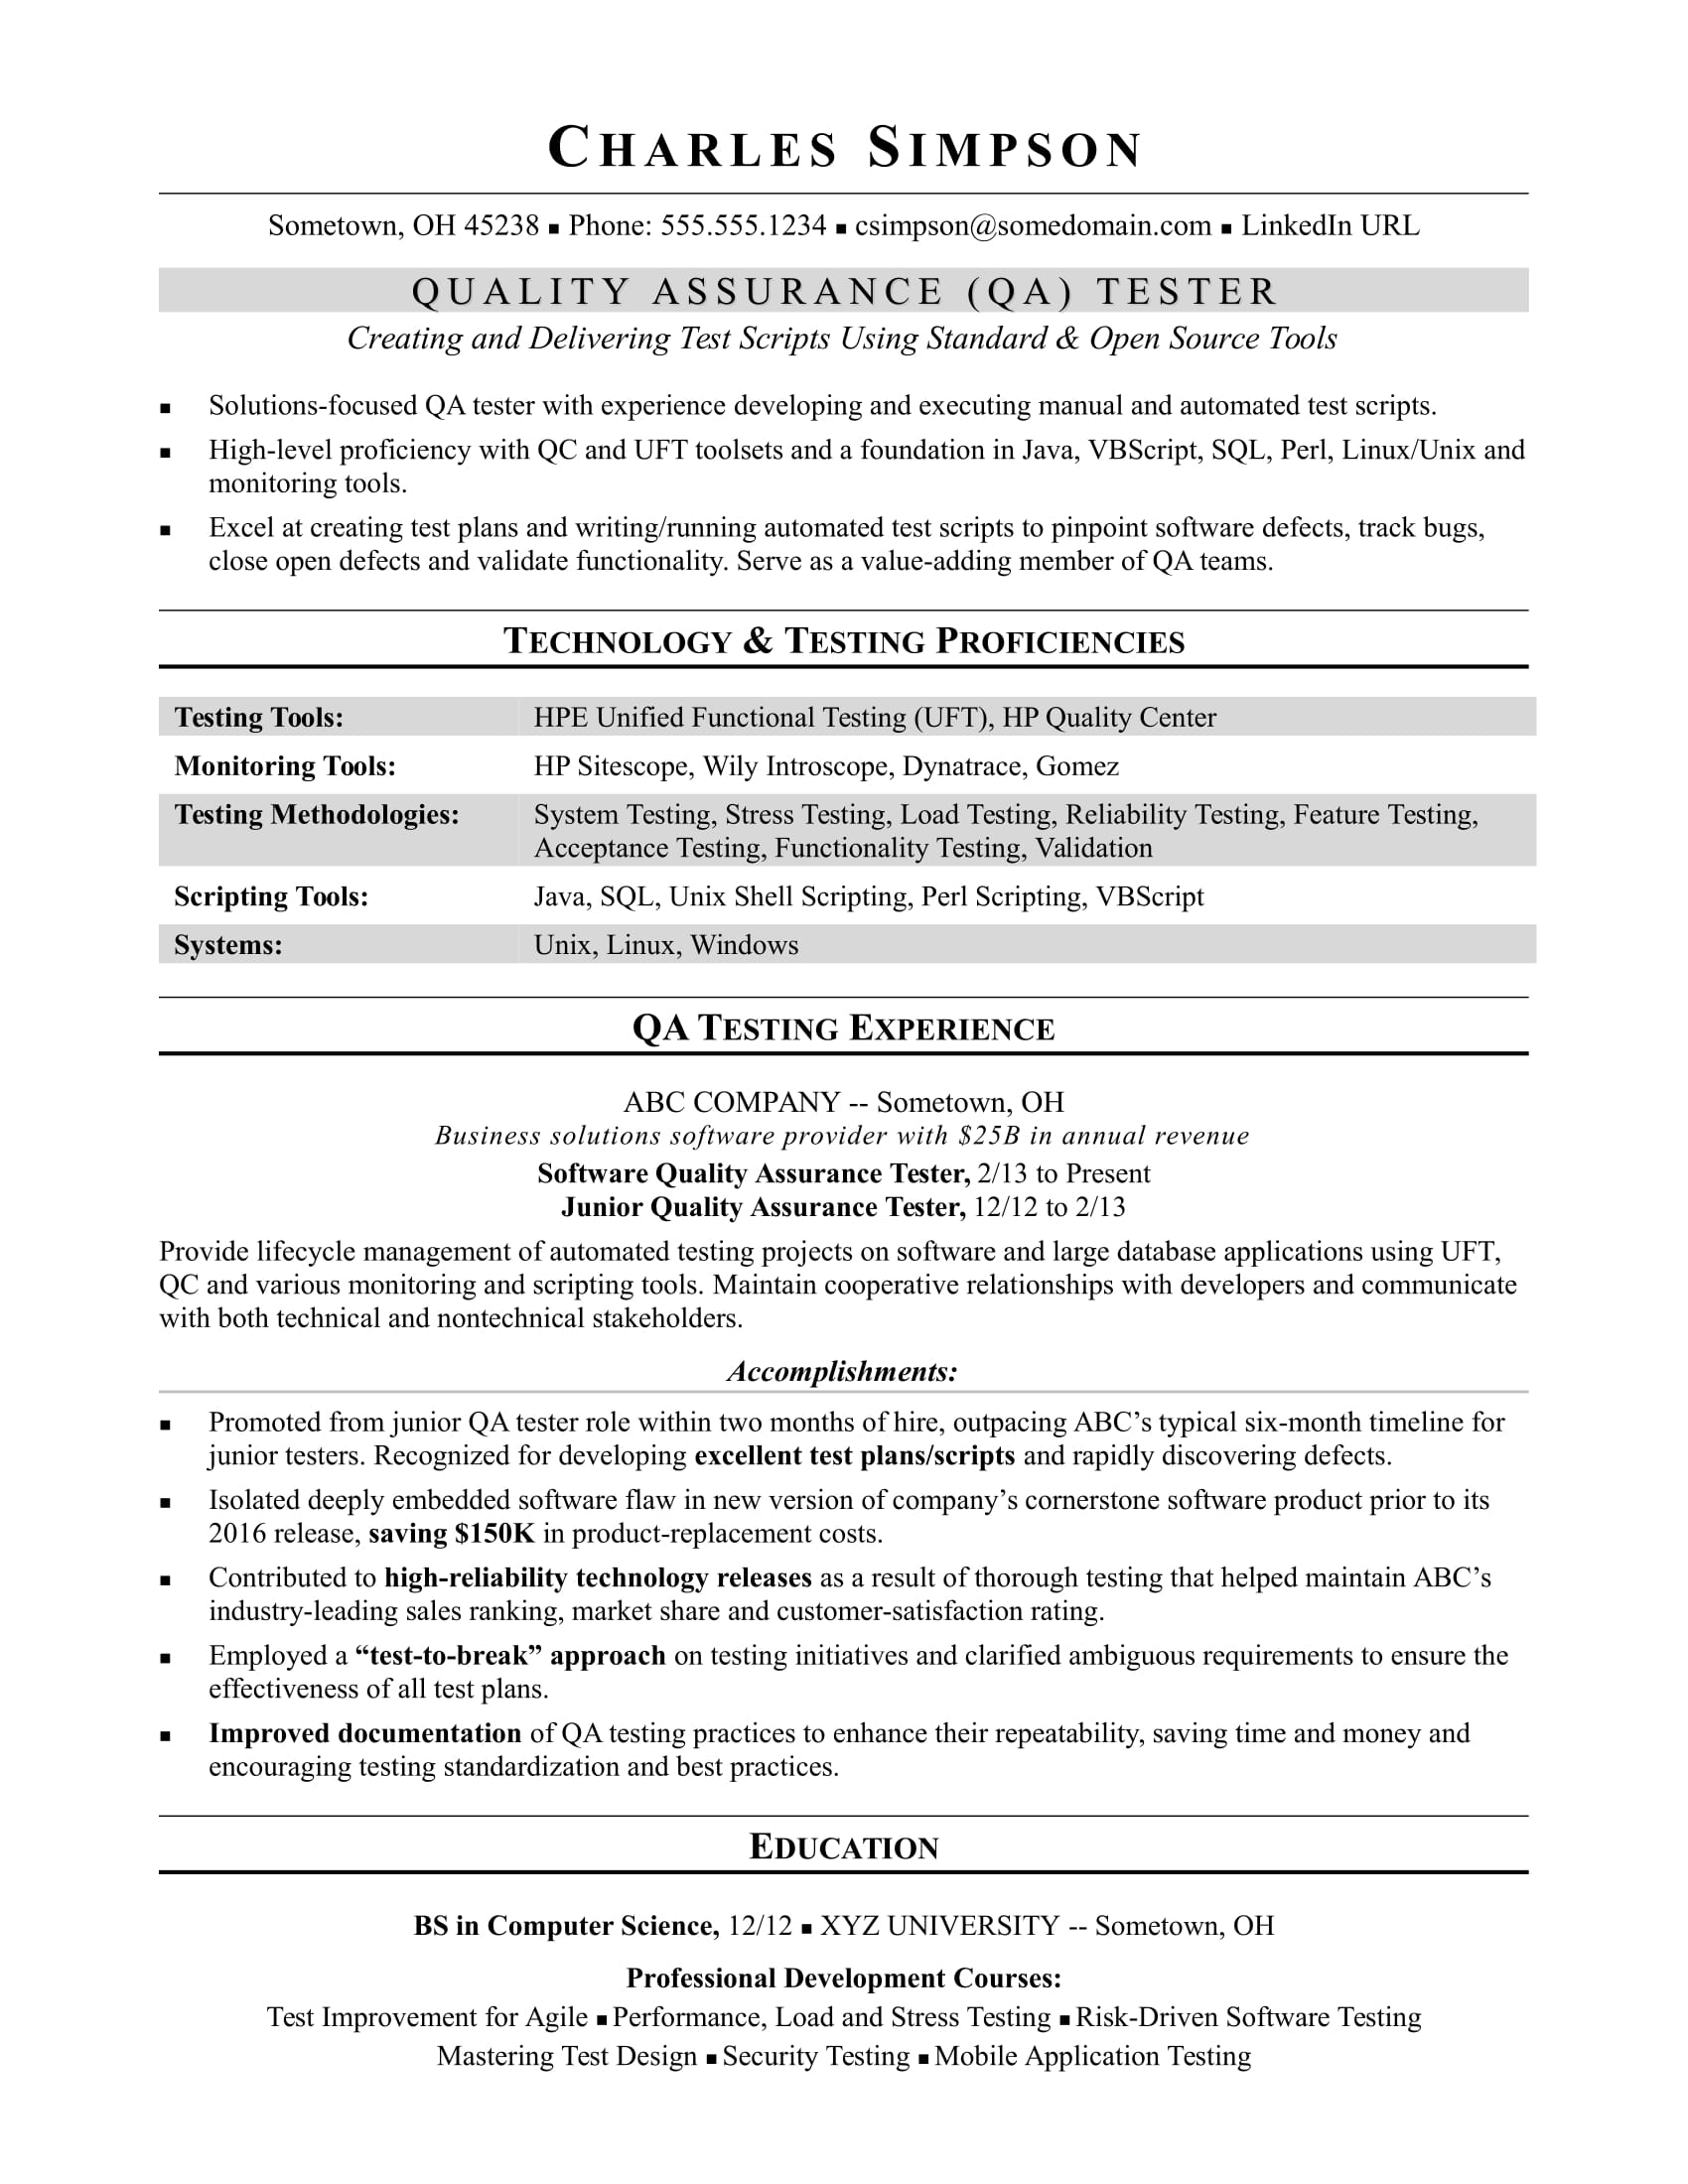 sample resume for midlevel qa software tester monster manual testing format another word Resume Manual Testing Resume Format